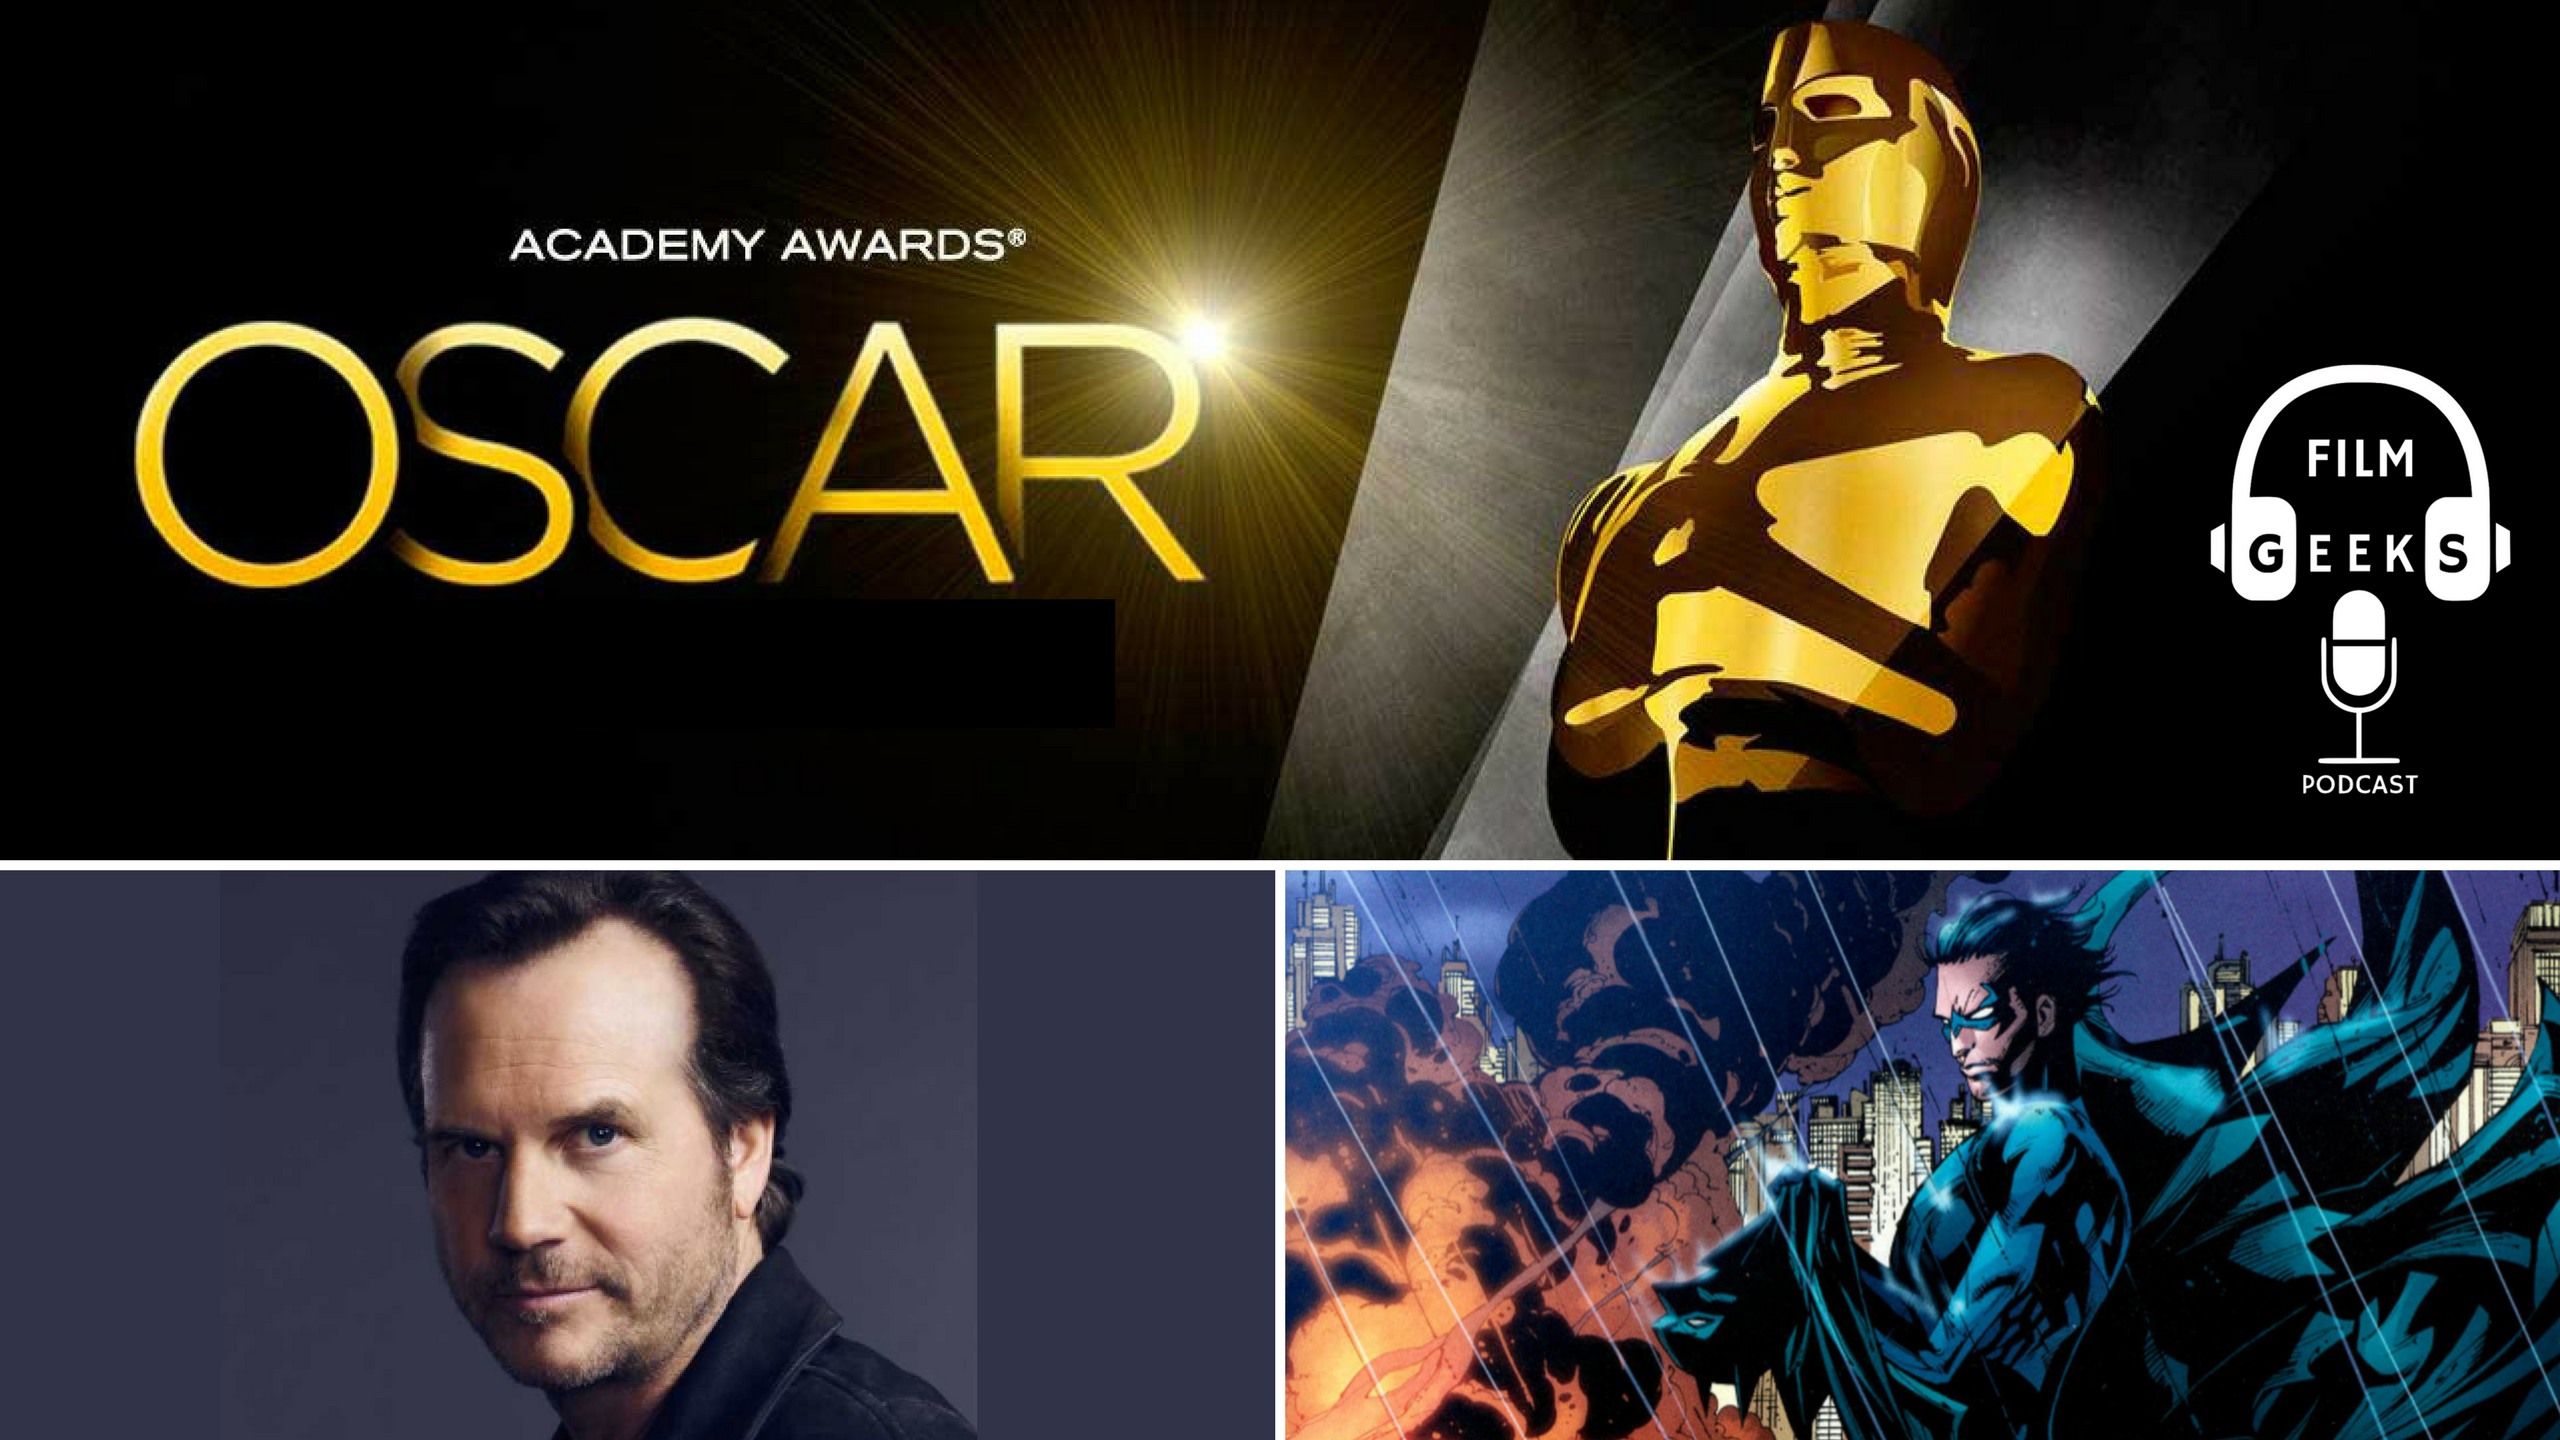 Film Geeks Podcast 011 – Oscars Talk + Bill Paxton Tribute + Nightwing Fancasting